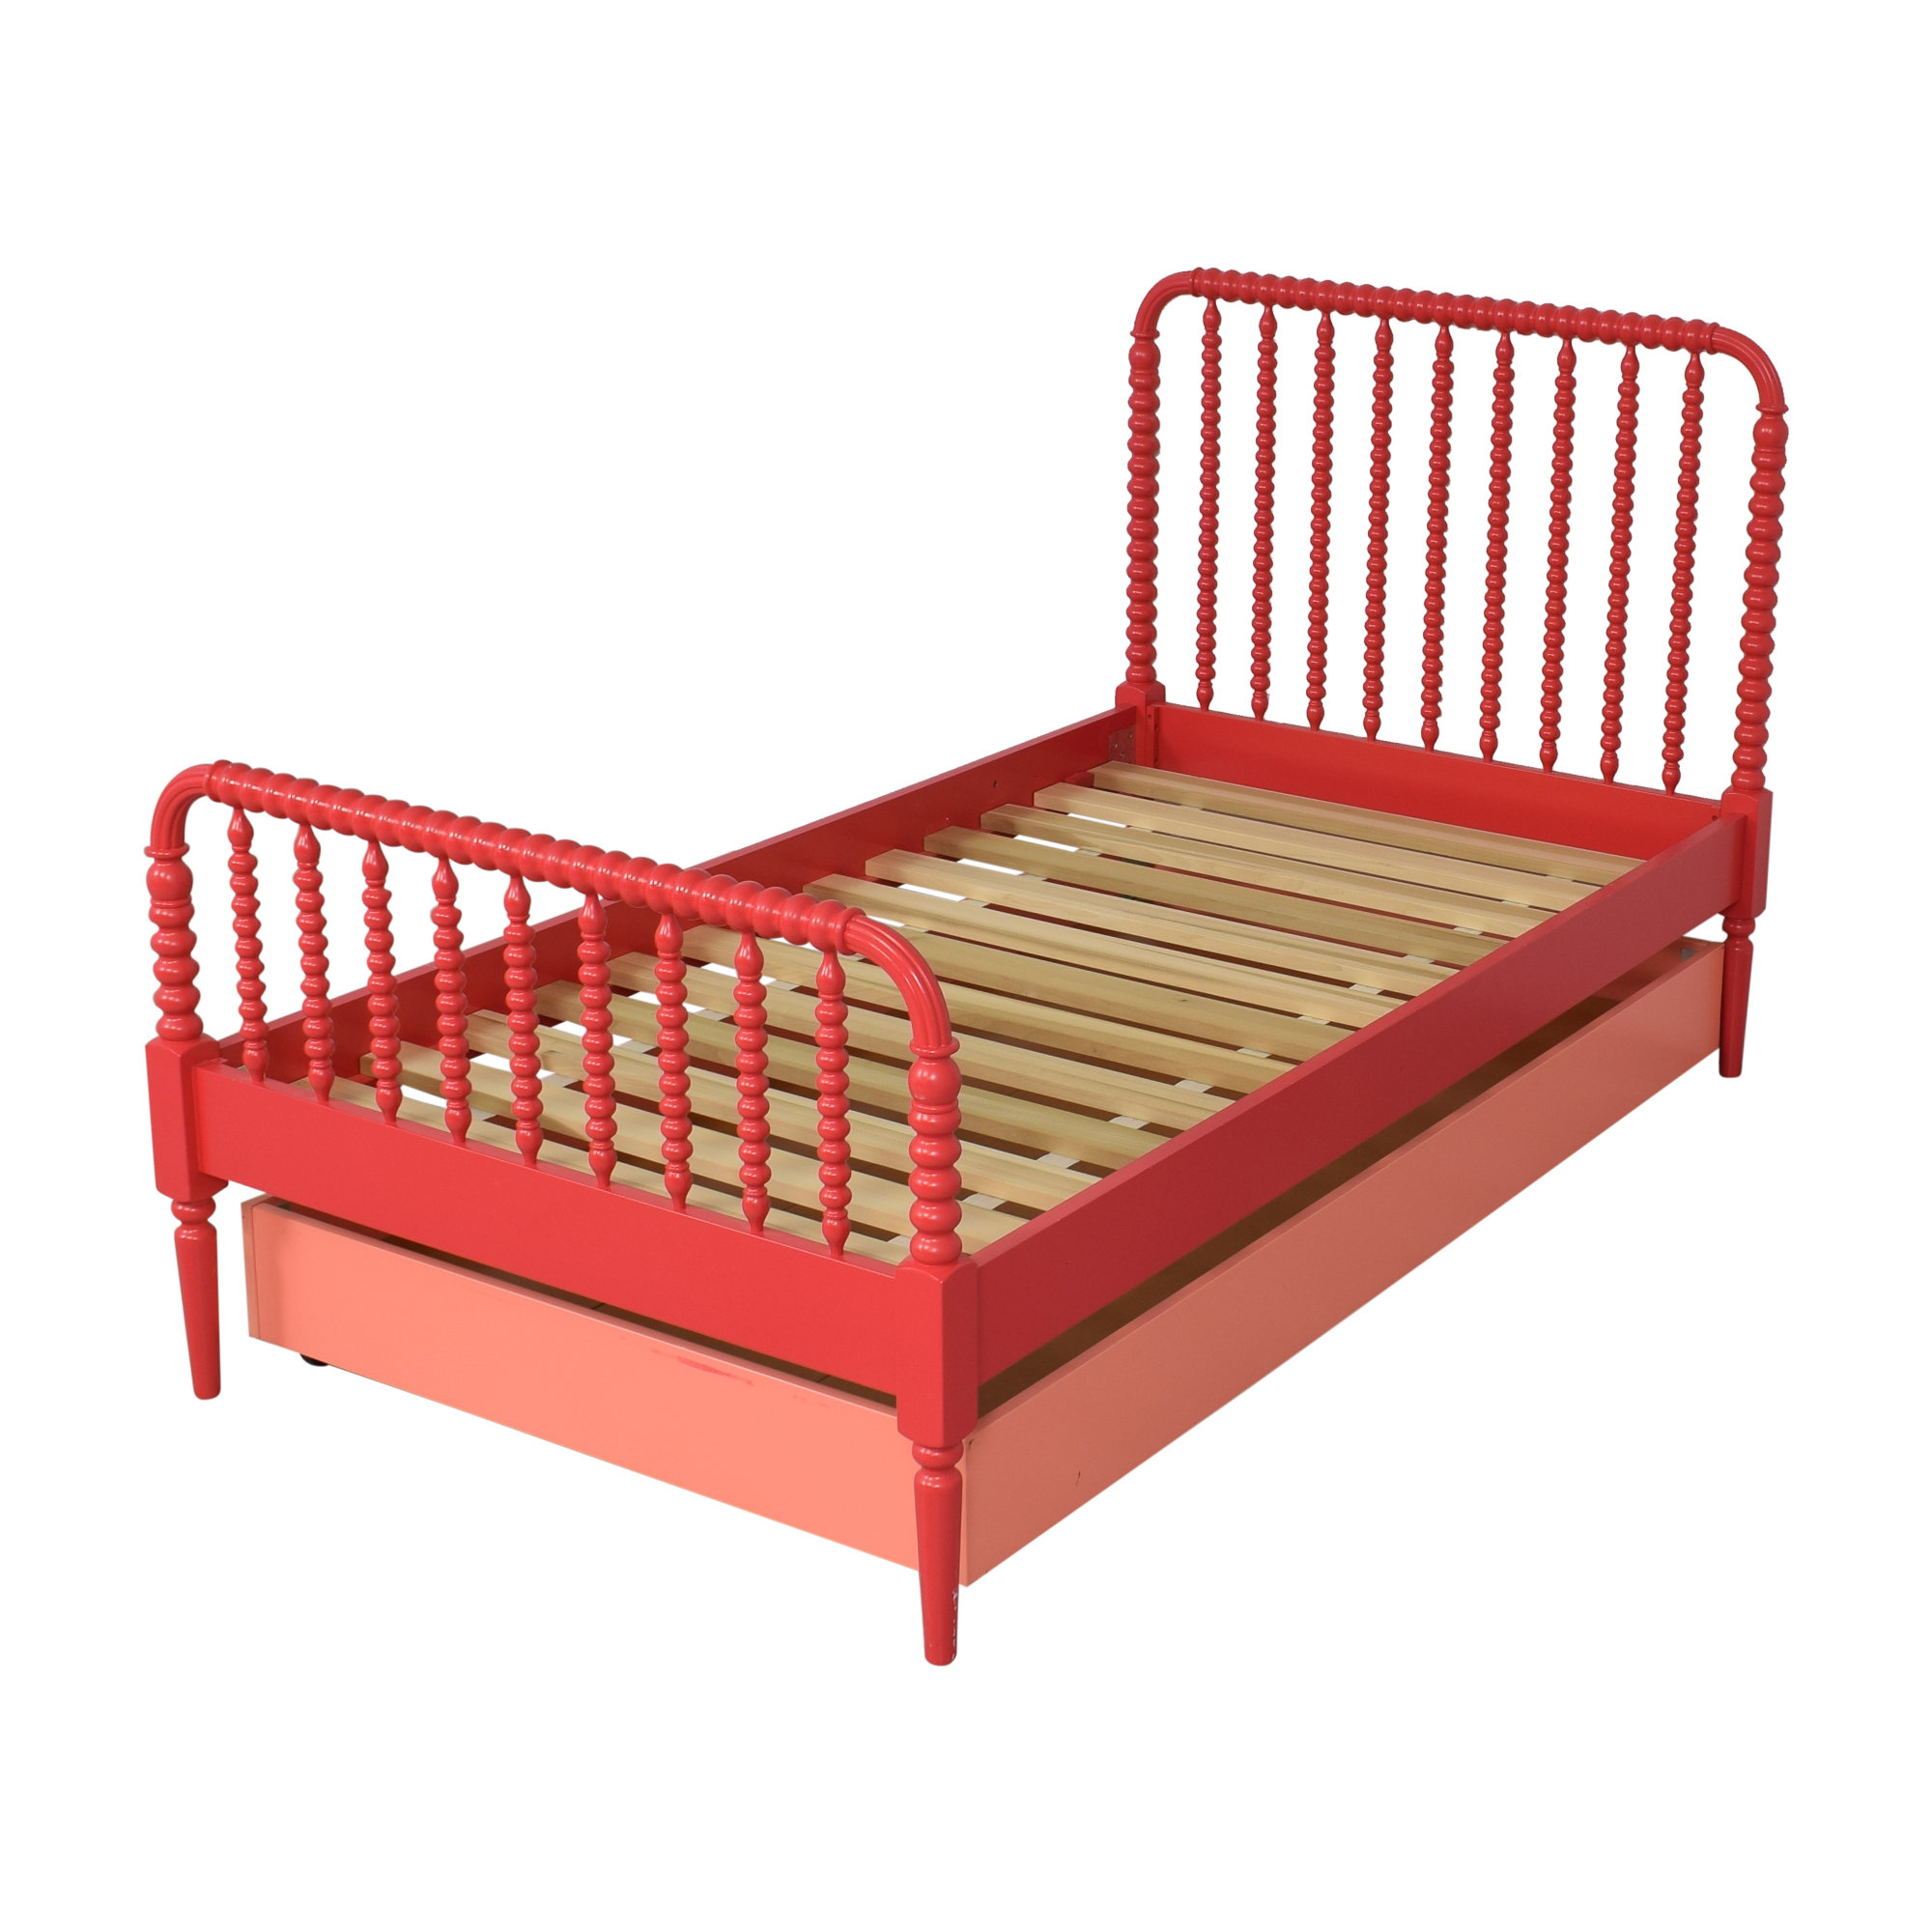 shop Land of Nod Jenny Lind Twin Bed and Trundle Land of Nod Beds